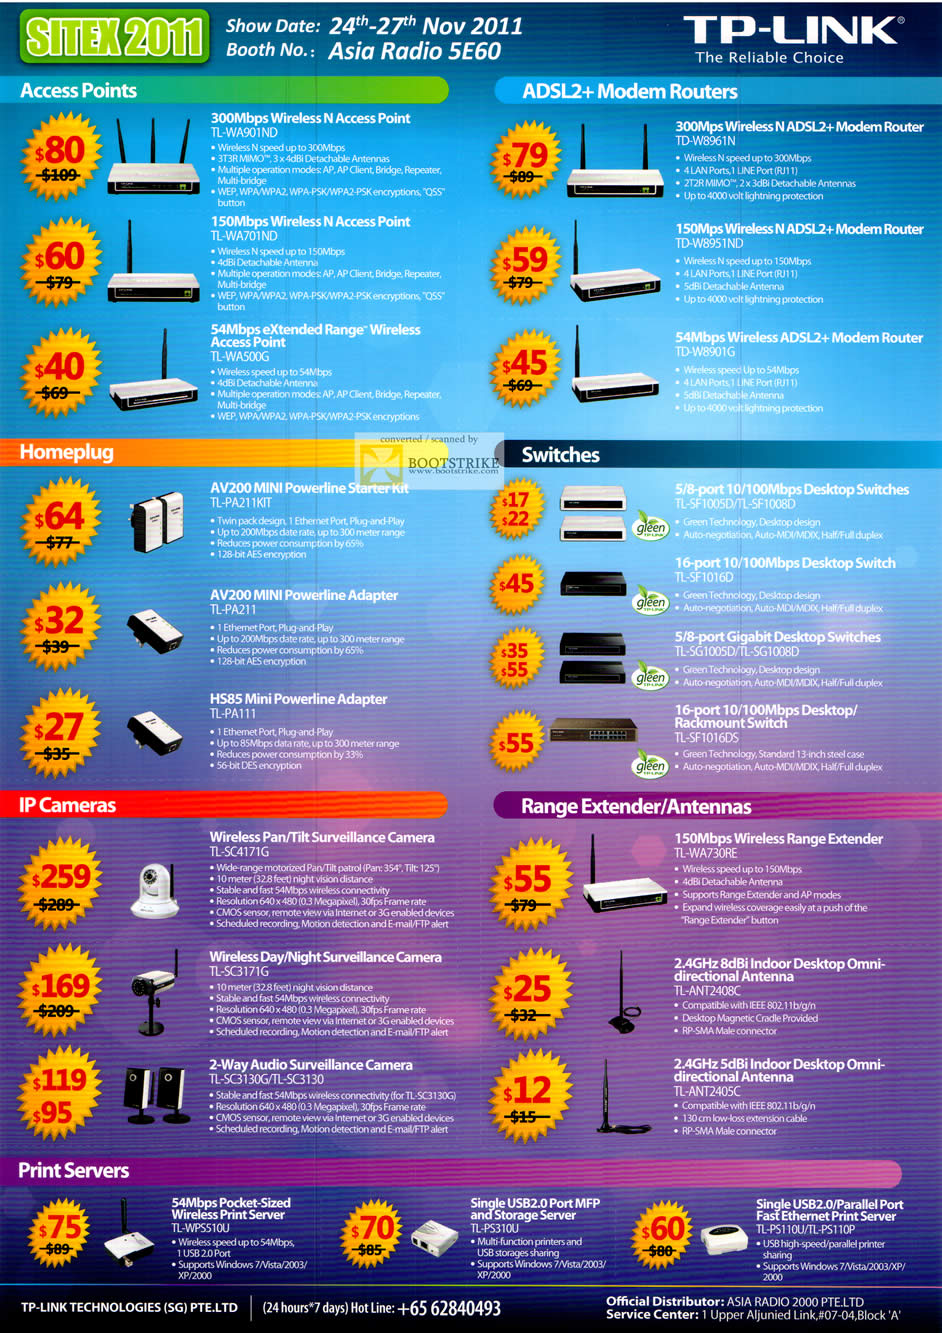 SITEX 2011 price list image brochure of Asia Radio TP-Link Networking Access Points, ADSL2 Modem Routers, Homeplug, Switch, IPCam, Range Extender, Antenna, Print Server